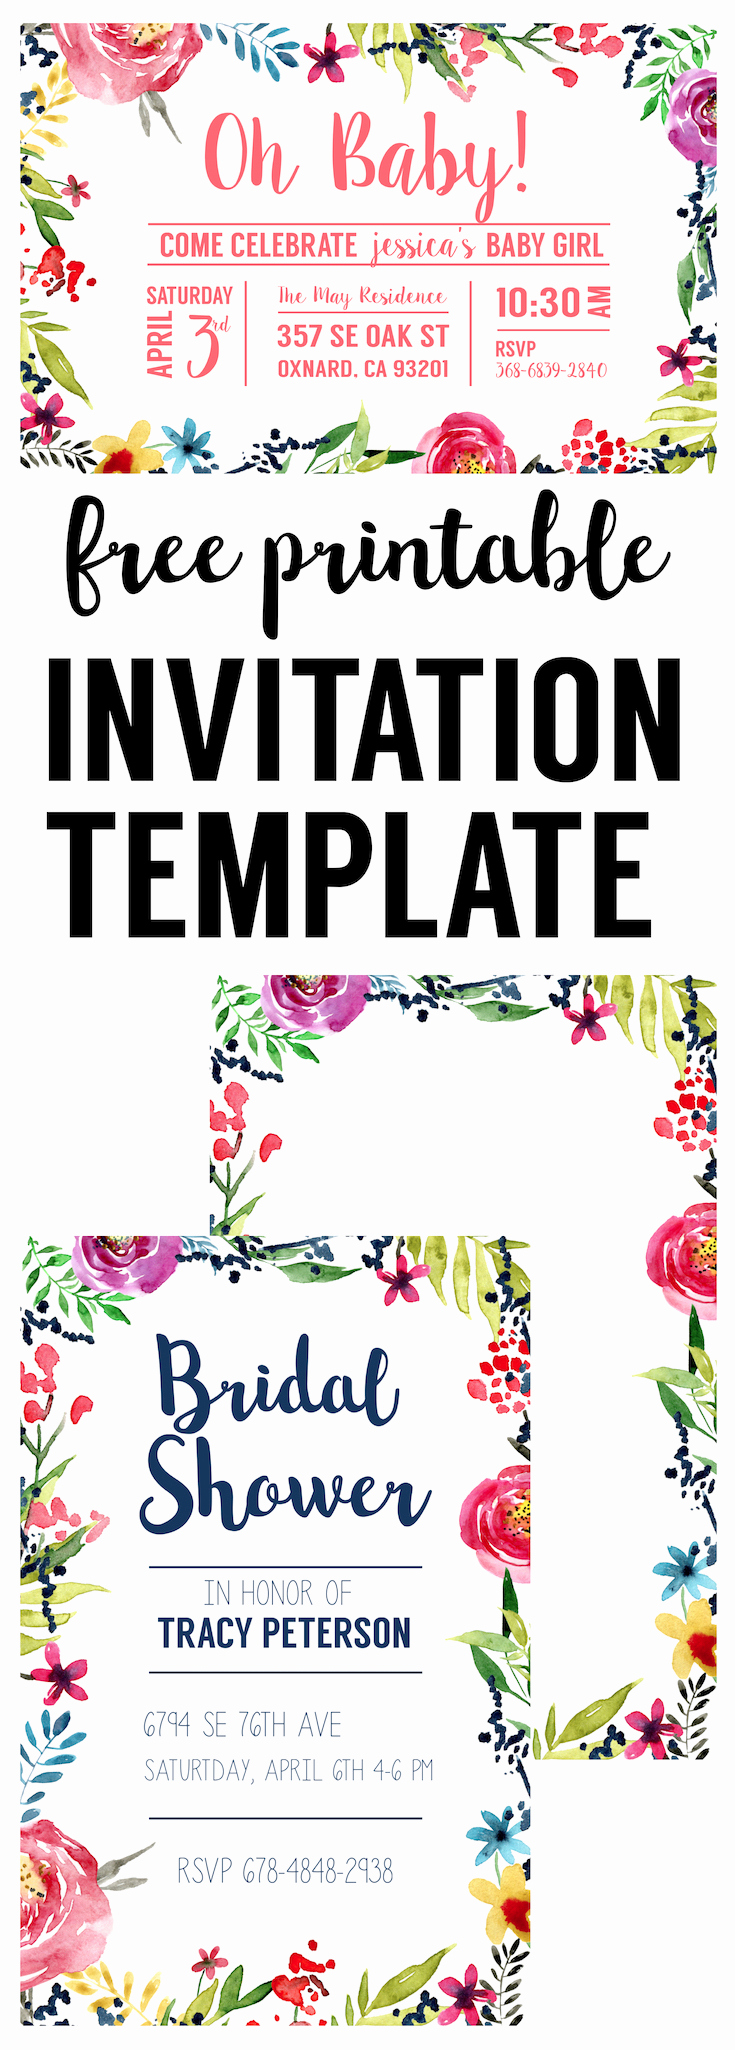 Baby Shower Invitation Free Printable Best Of Floral Borders Invitations Free Printable Invitation